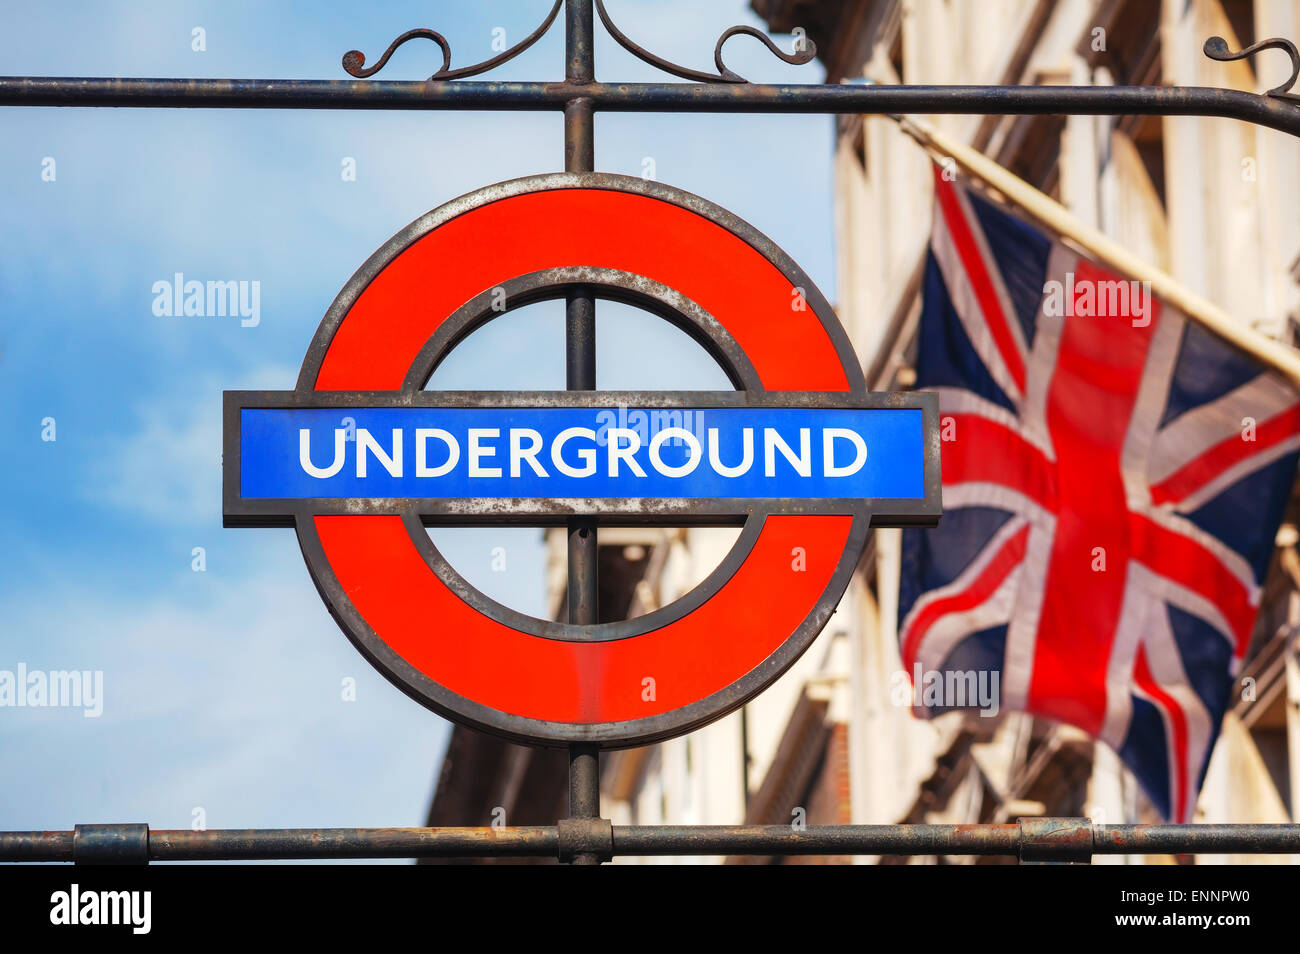 LONDON - APRIL 12: London underground sign on April 12, 2015 in London, UK. The system serves 270 stations. - Stock Image